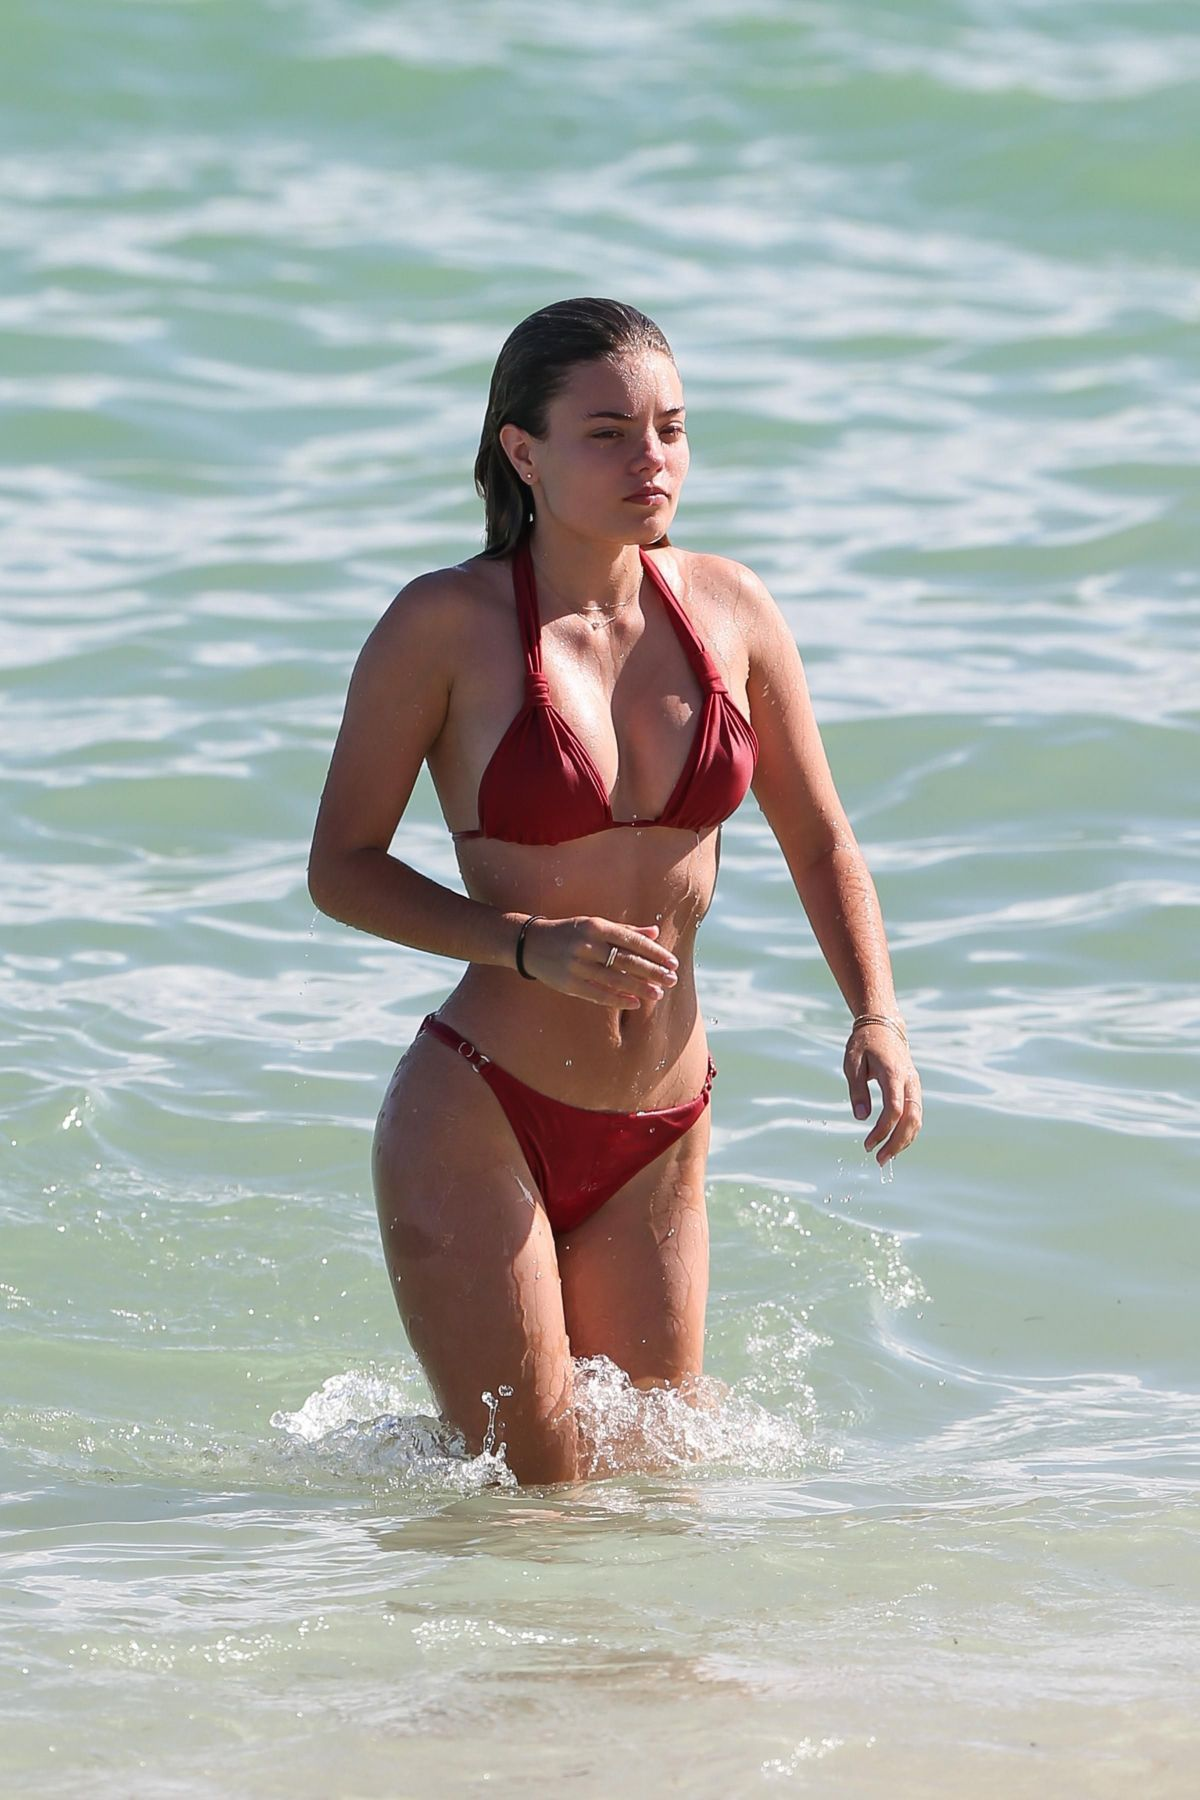 Sophia Vantuno in Red Bikini on the beach in Miami Pic 7 of 35